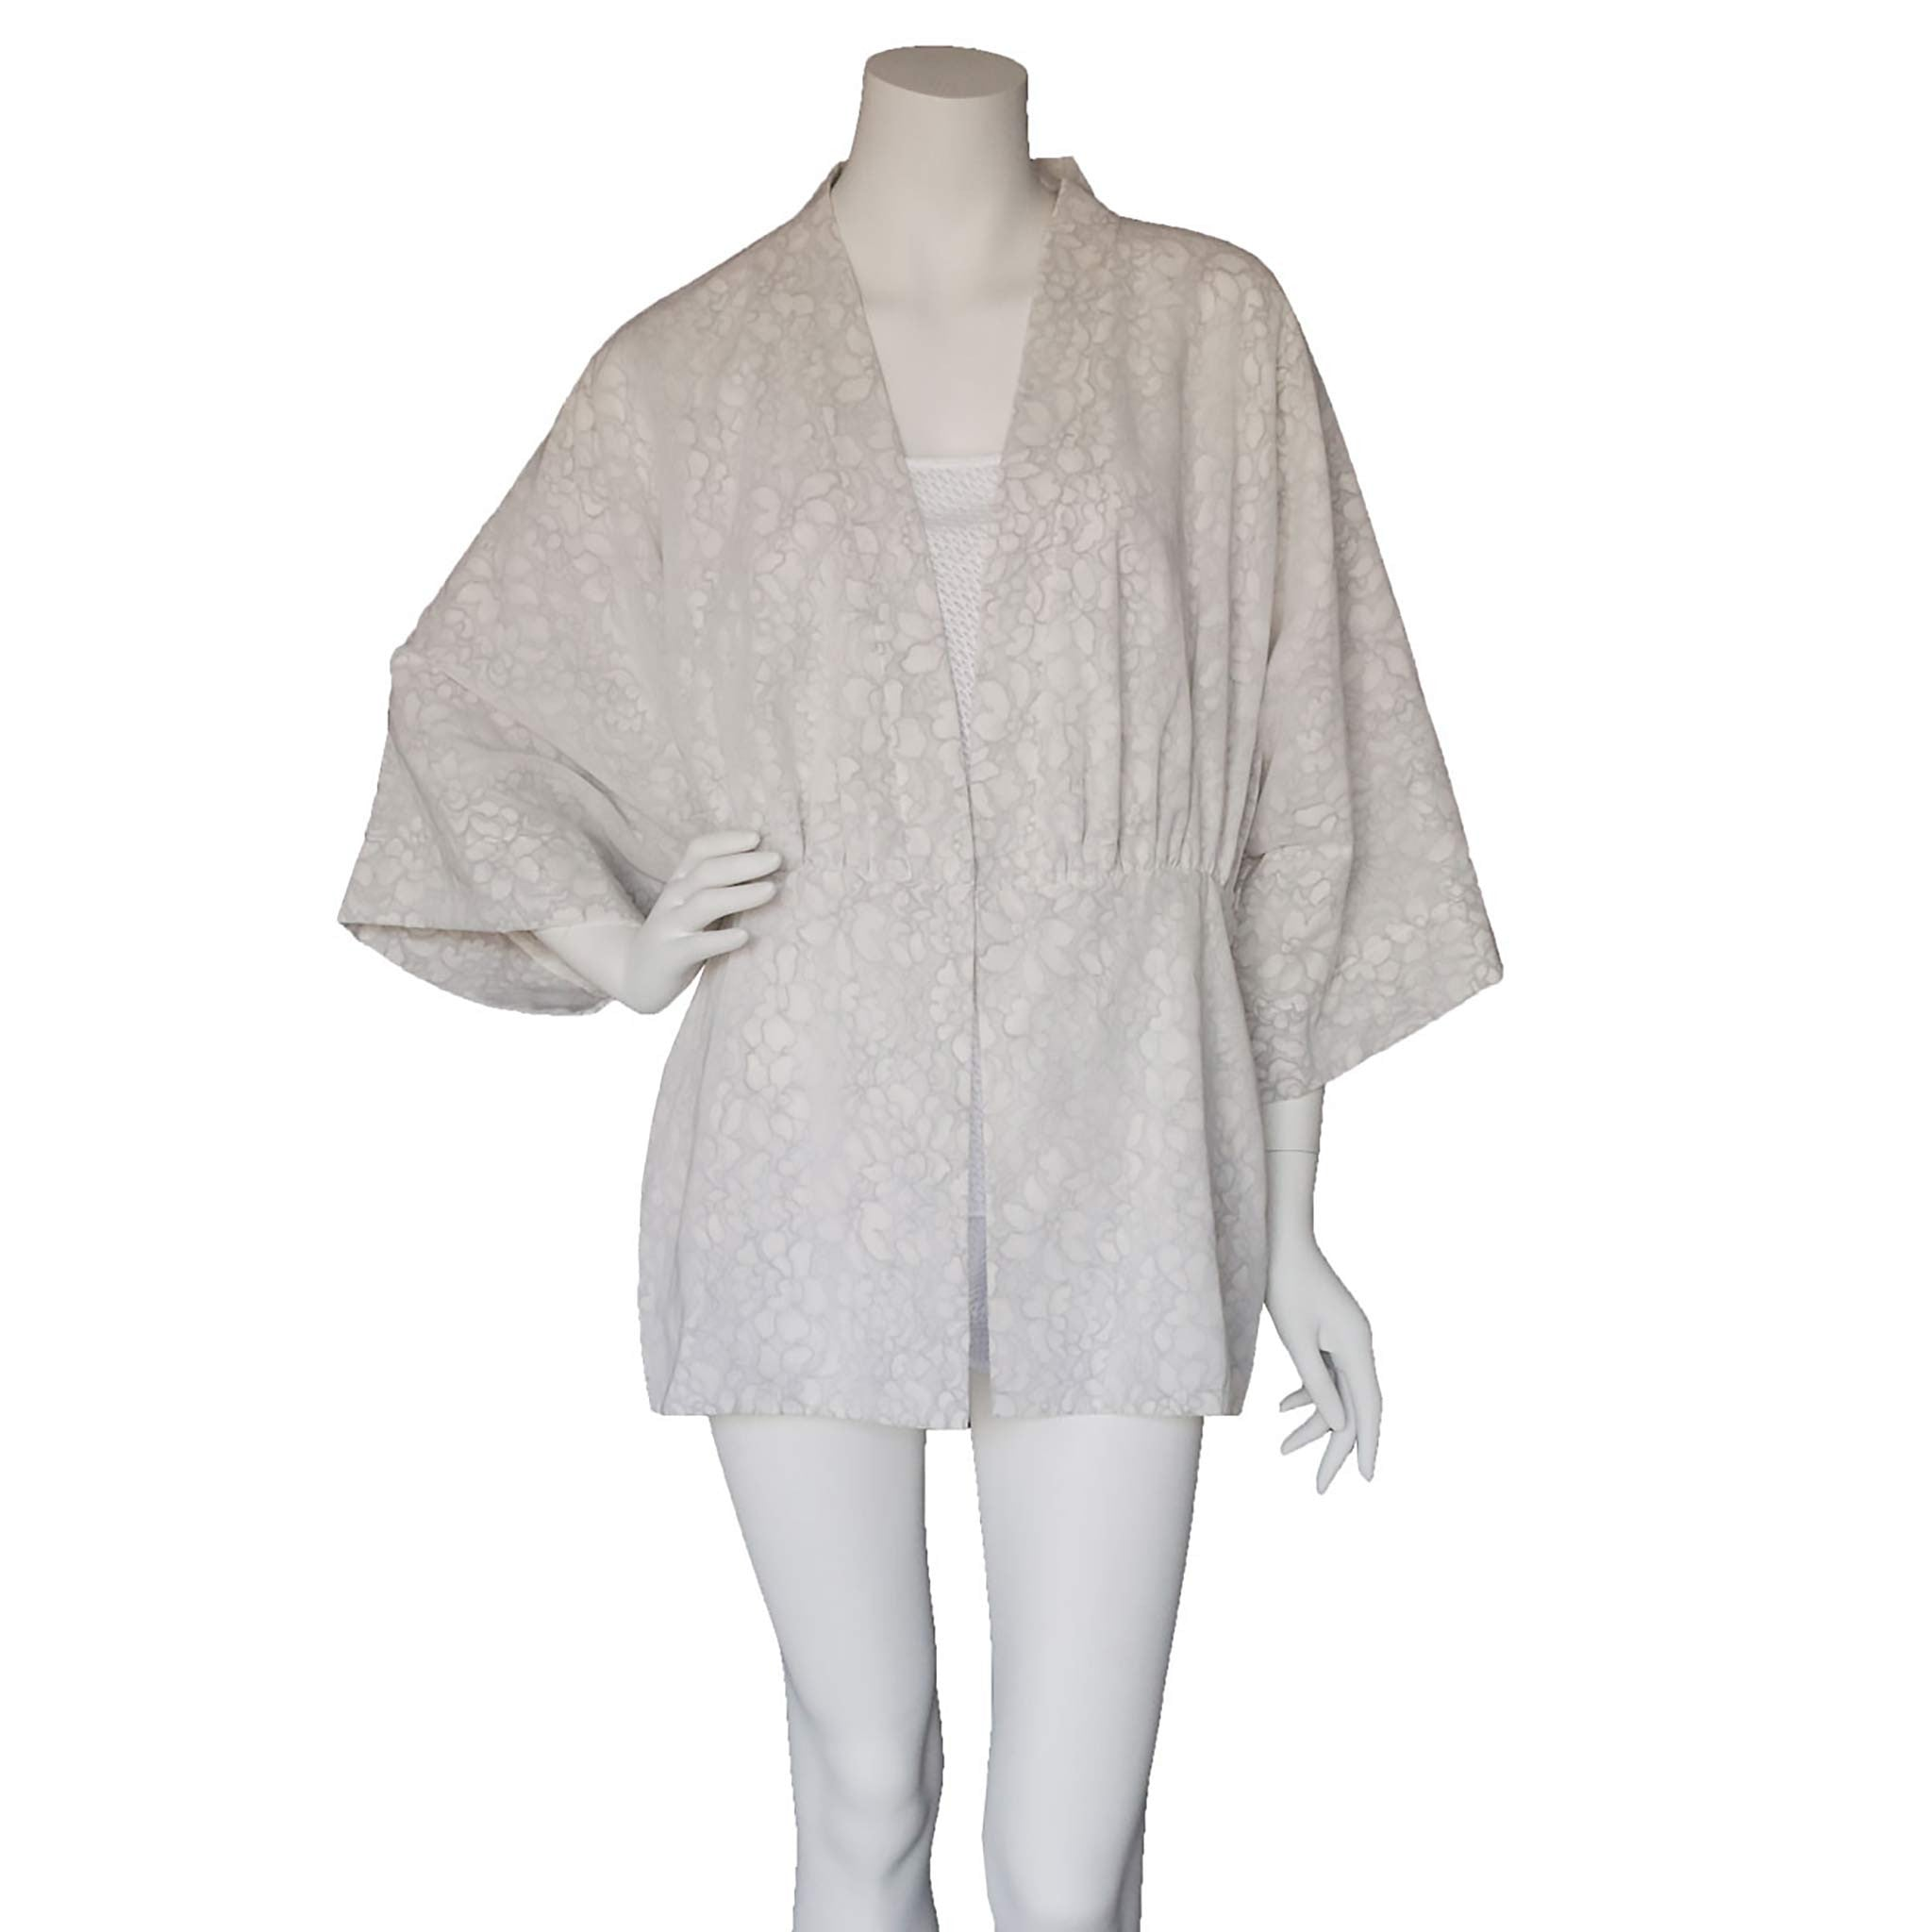 Charis Swiss Voile French Lace Bed Jacket